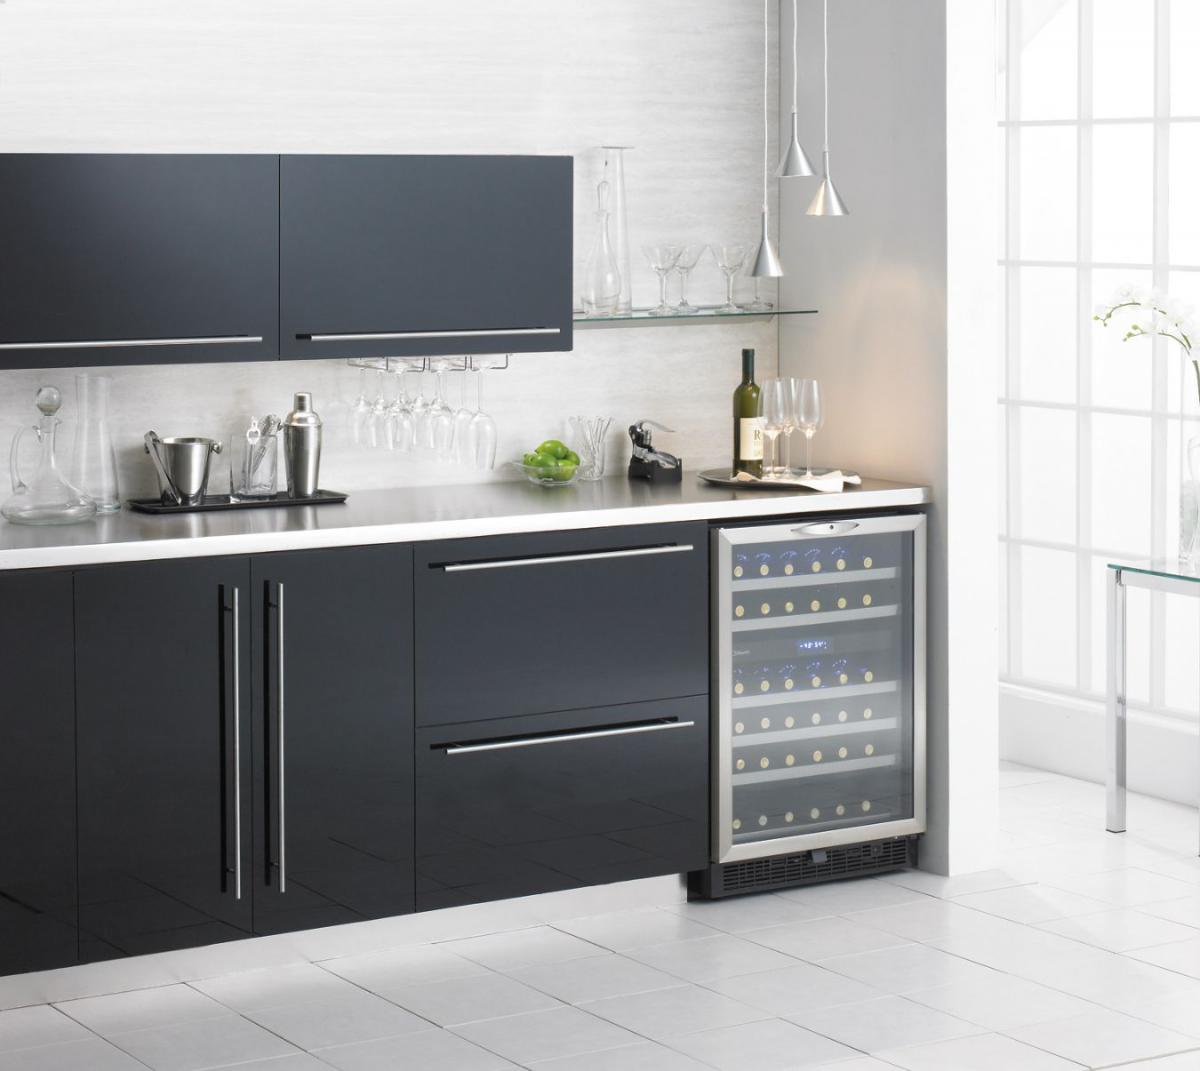 kitchen wine cooler, stainless steel